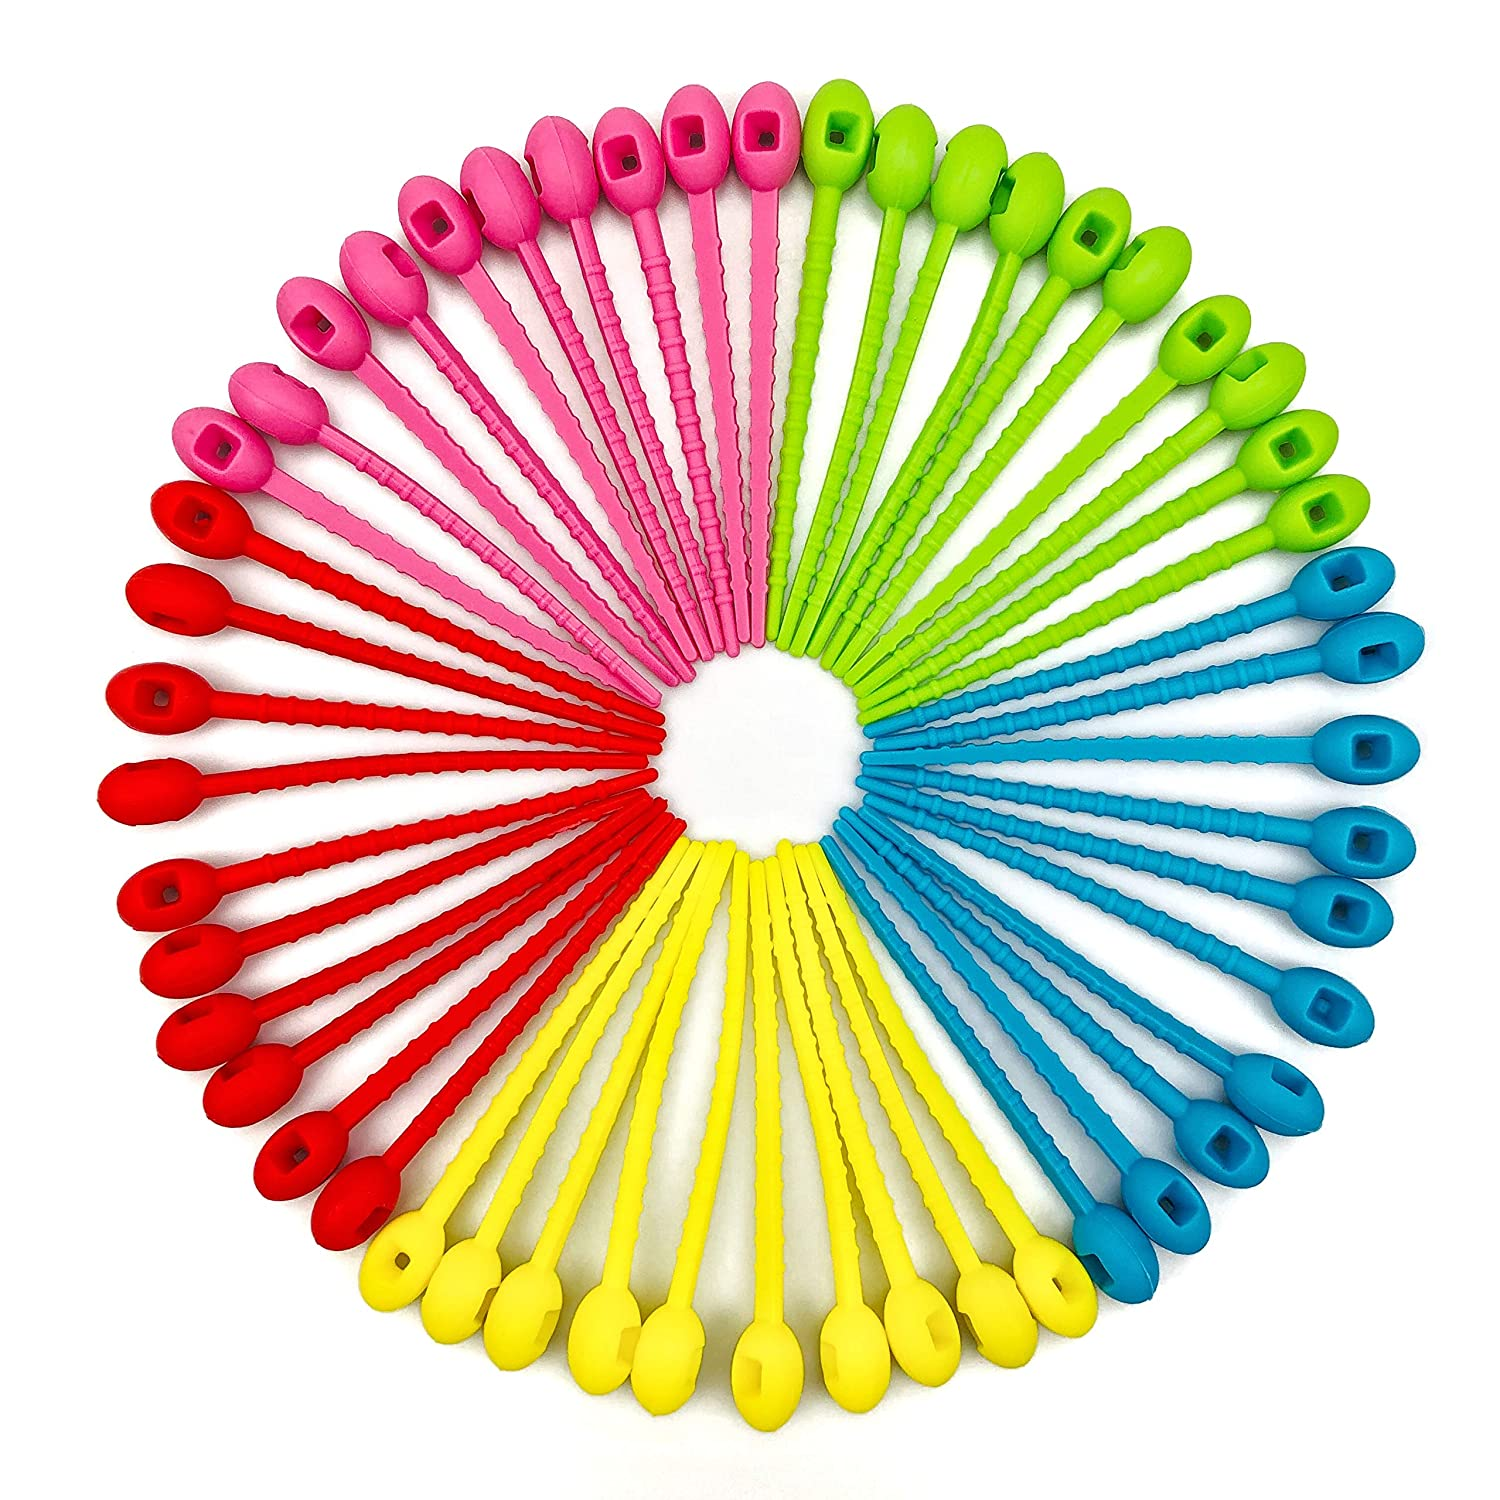 50 Pack of Reusable Silicone Cable Tie Straps Zip Ties Multi Color, Adjustable Twist Ties Rubber Ties for Cable/Bag/Headset/Plants Ties Soft, Pink/Red/Yellow/Green/Blue